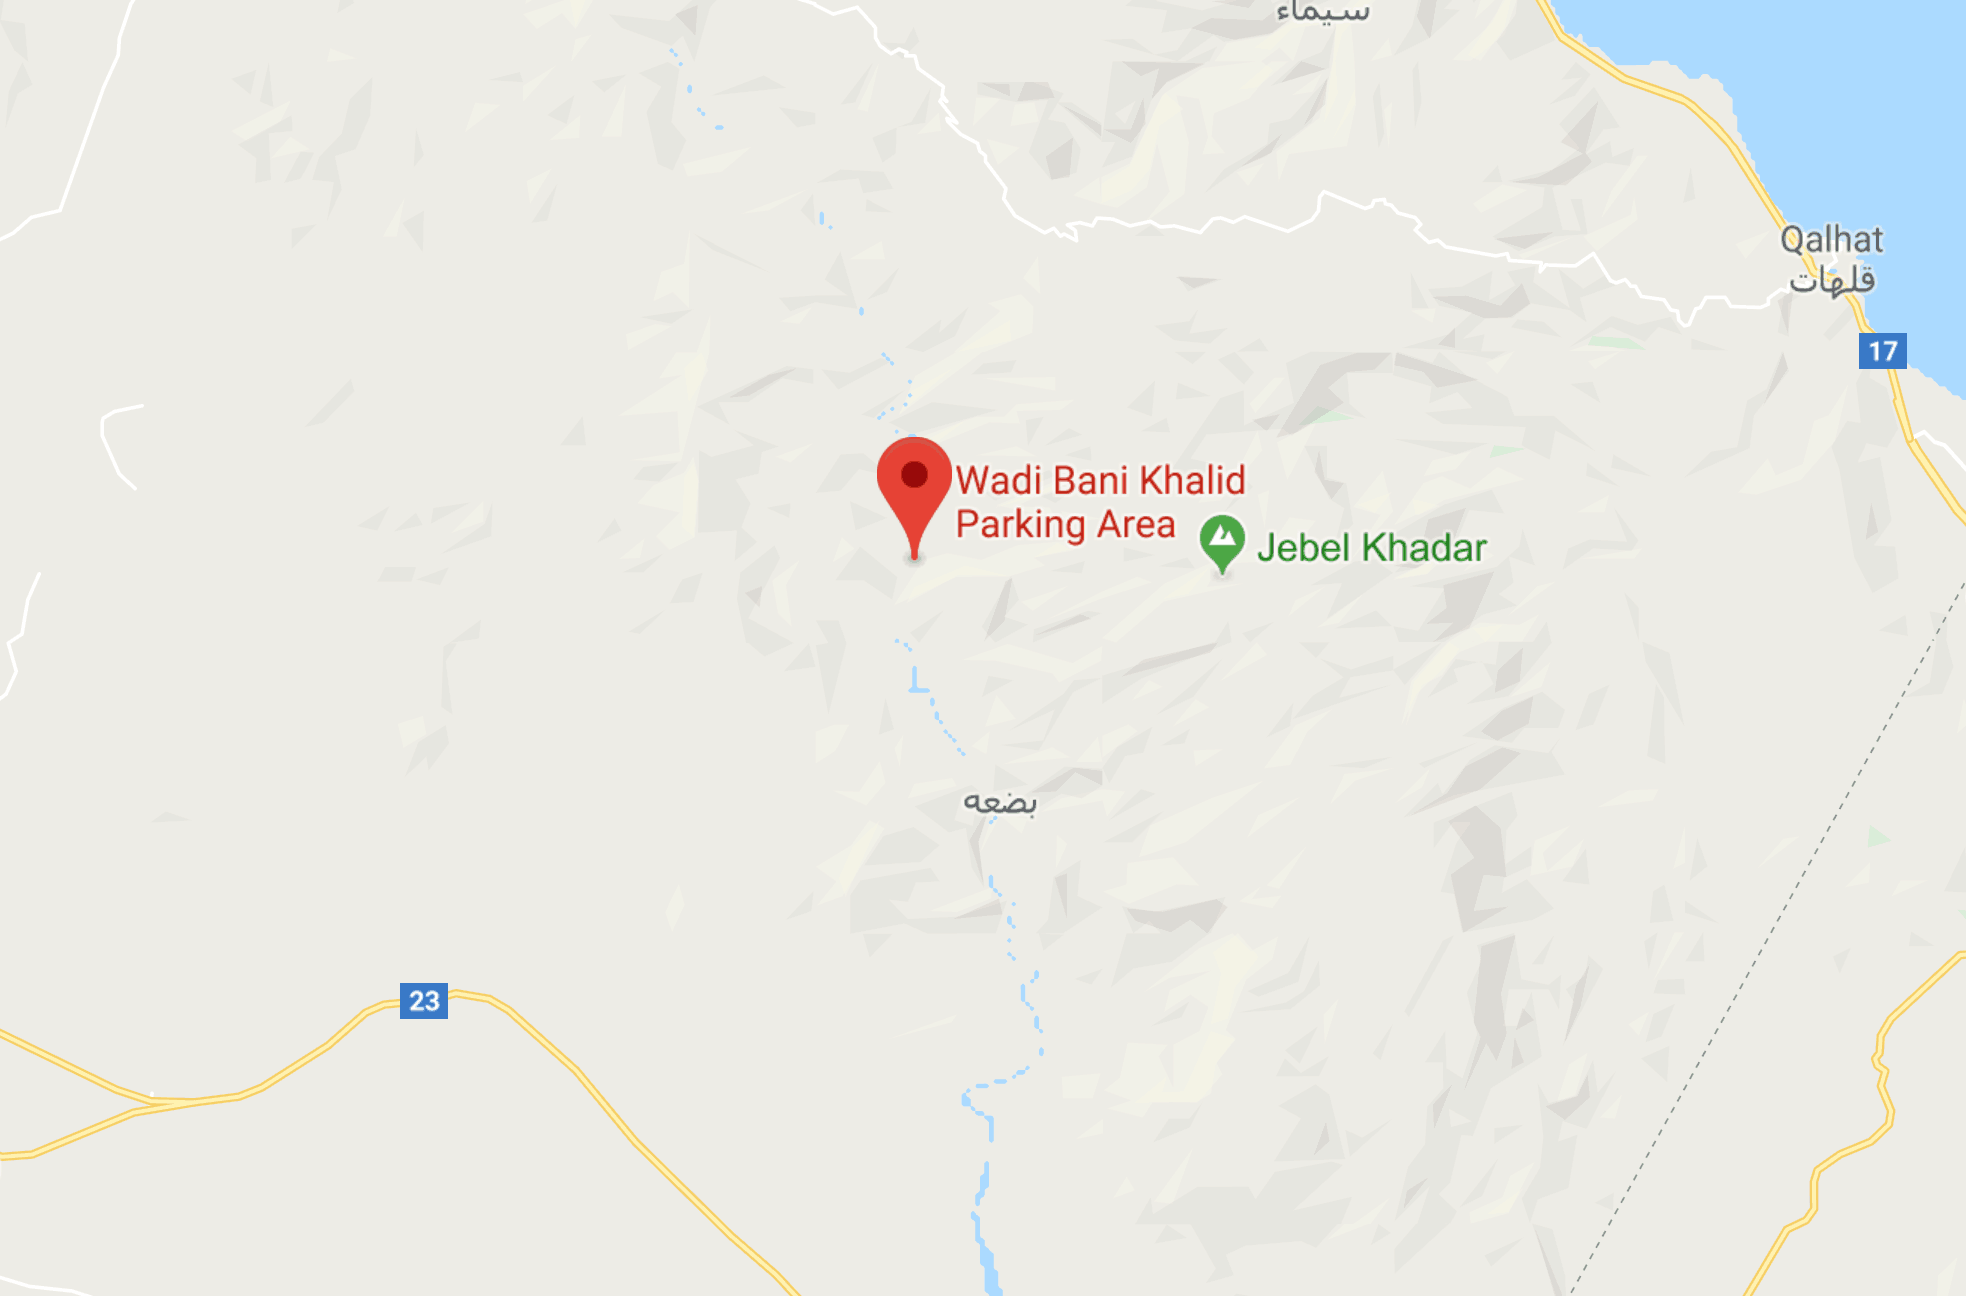 Map to find Wadi Bani Khalid in Oman